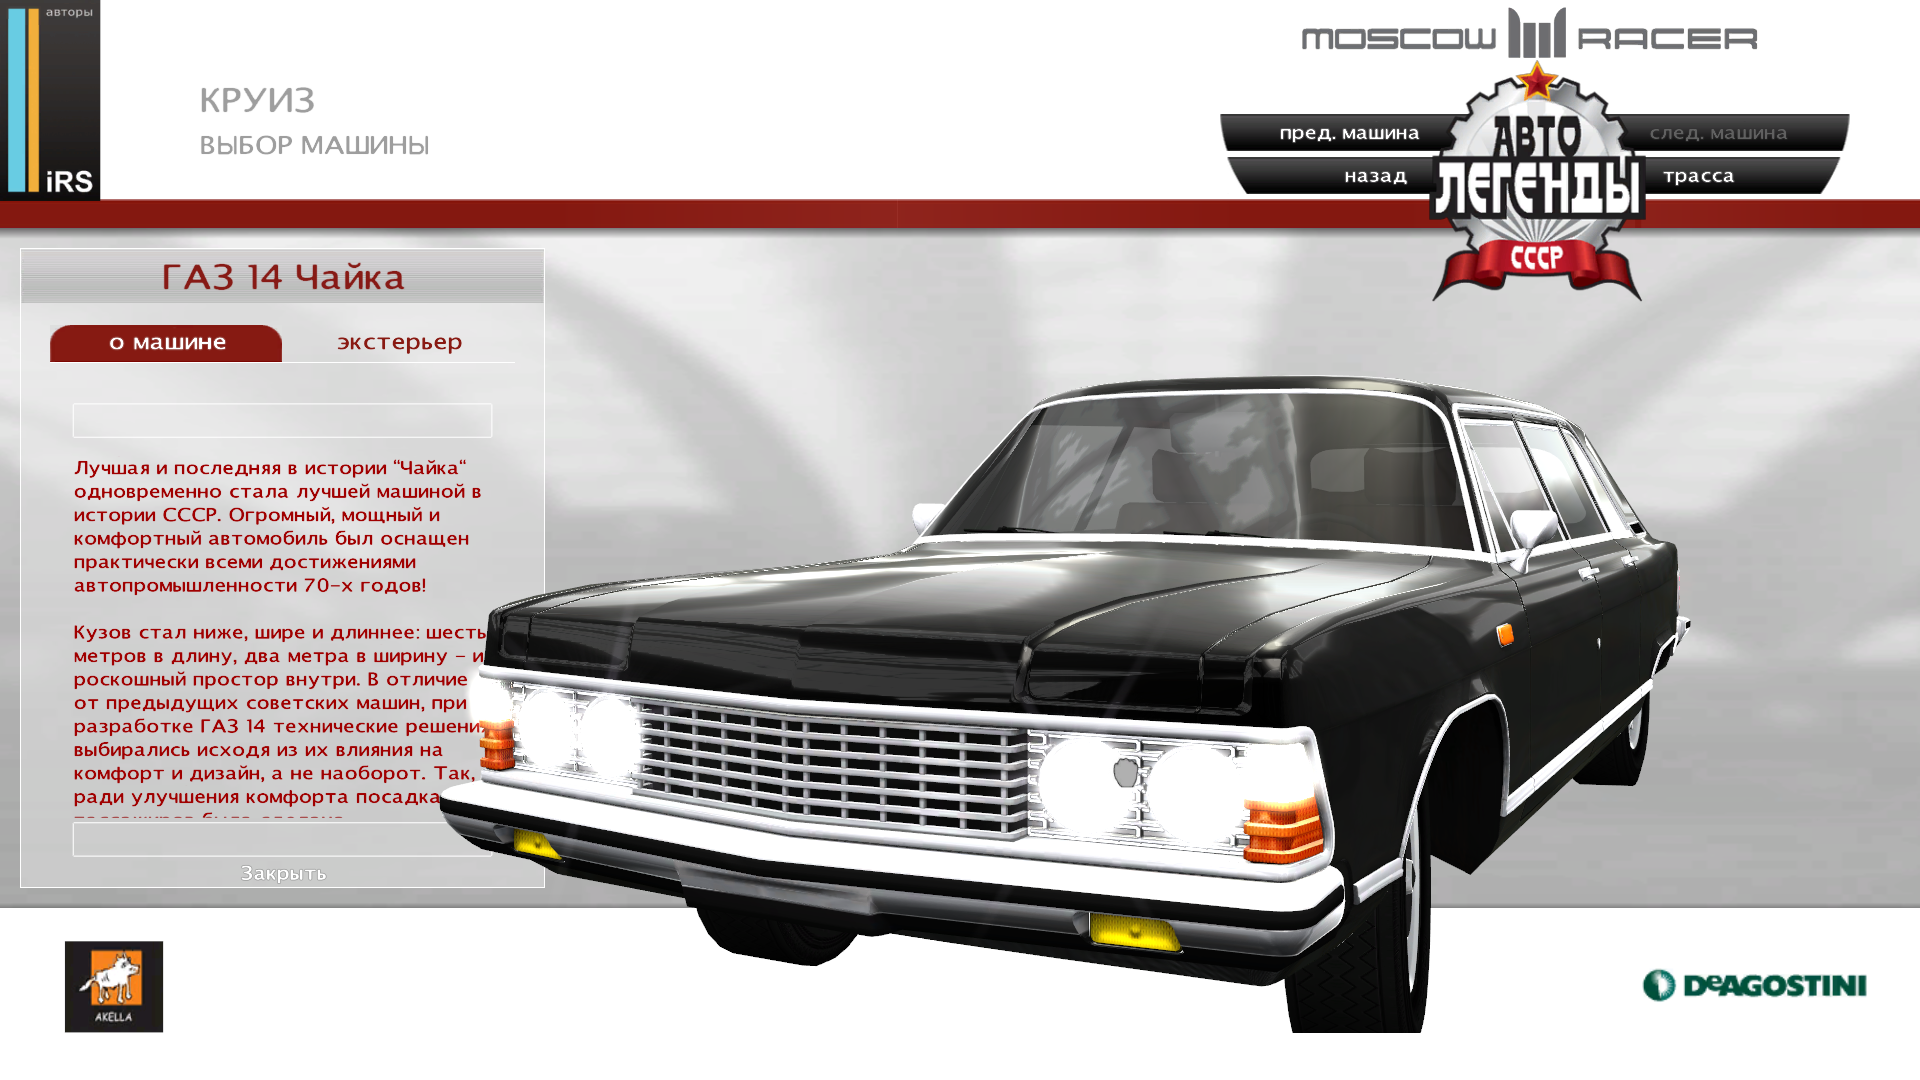 Moscow Racer: Avtolegendy SSSR Windows Car selection screen, with some information about the cars